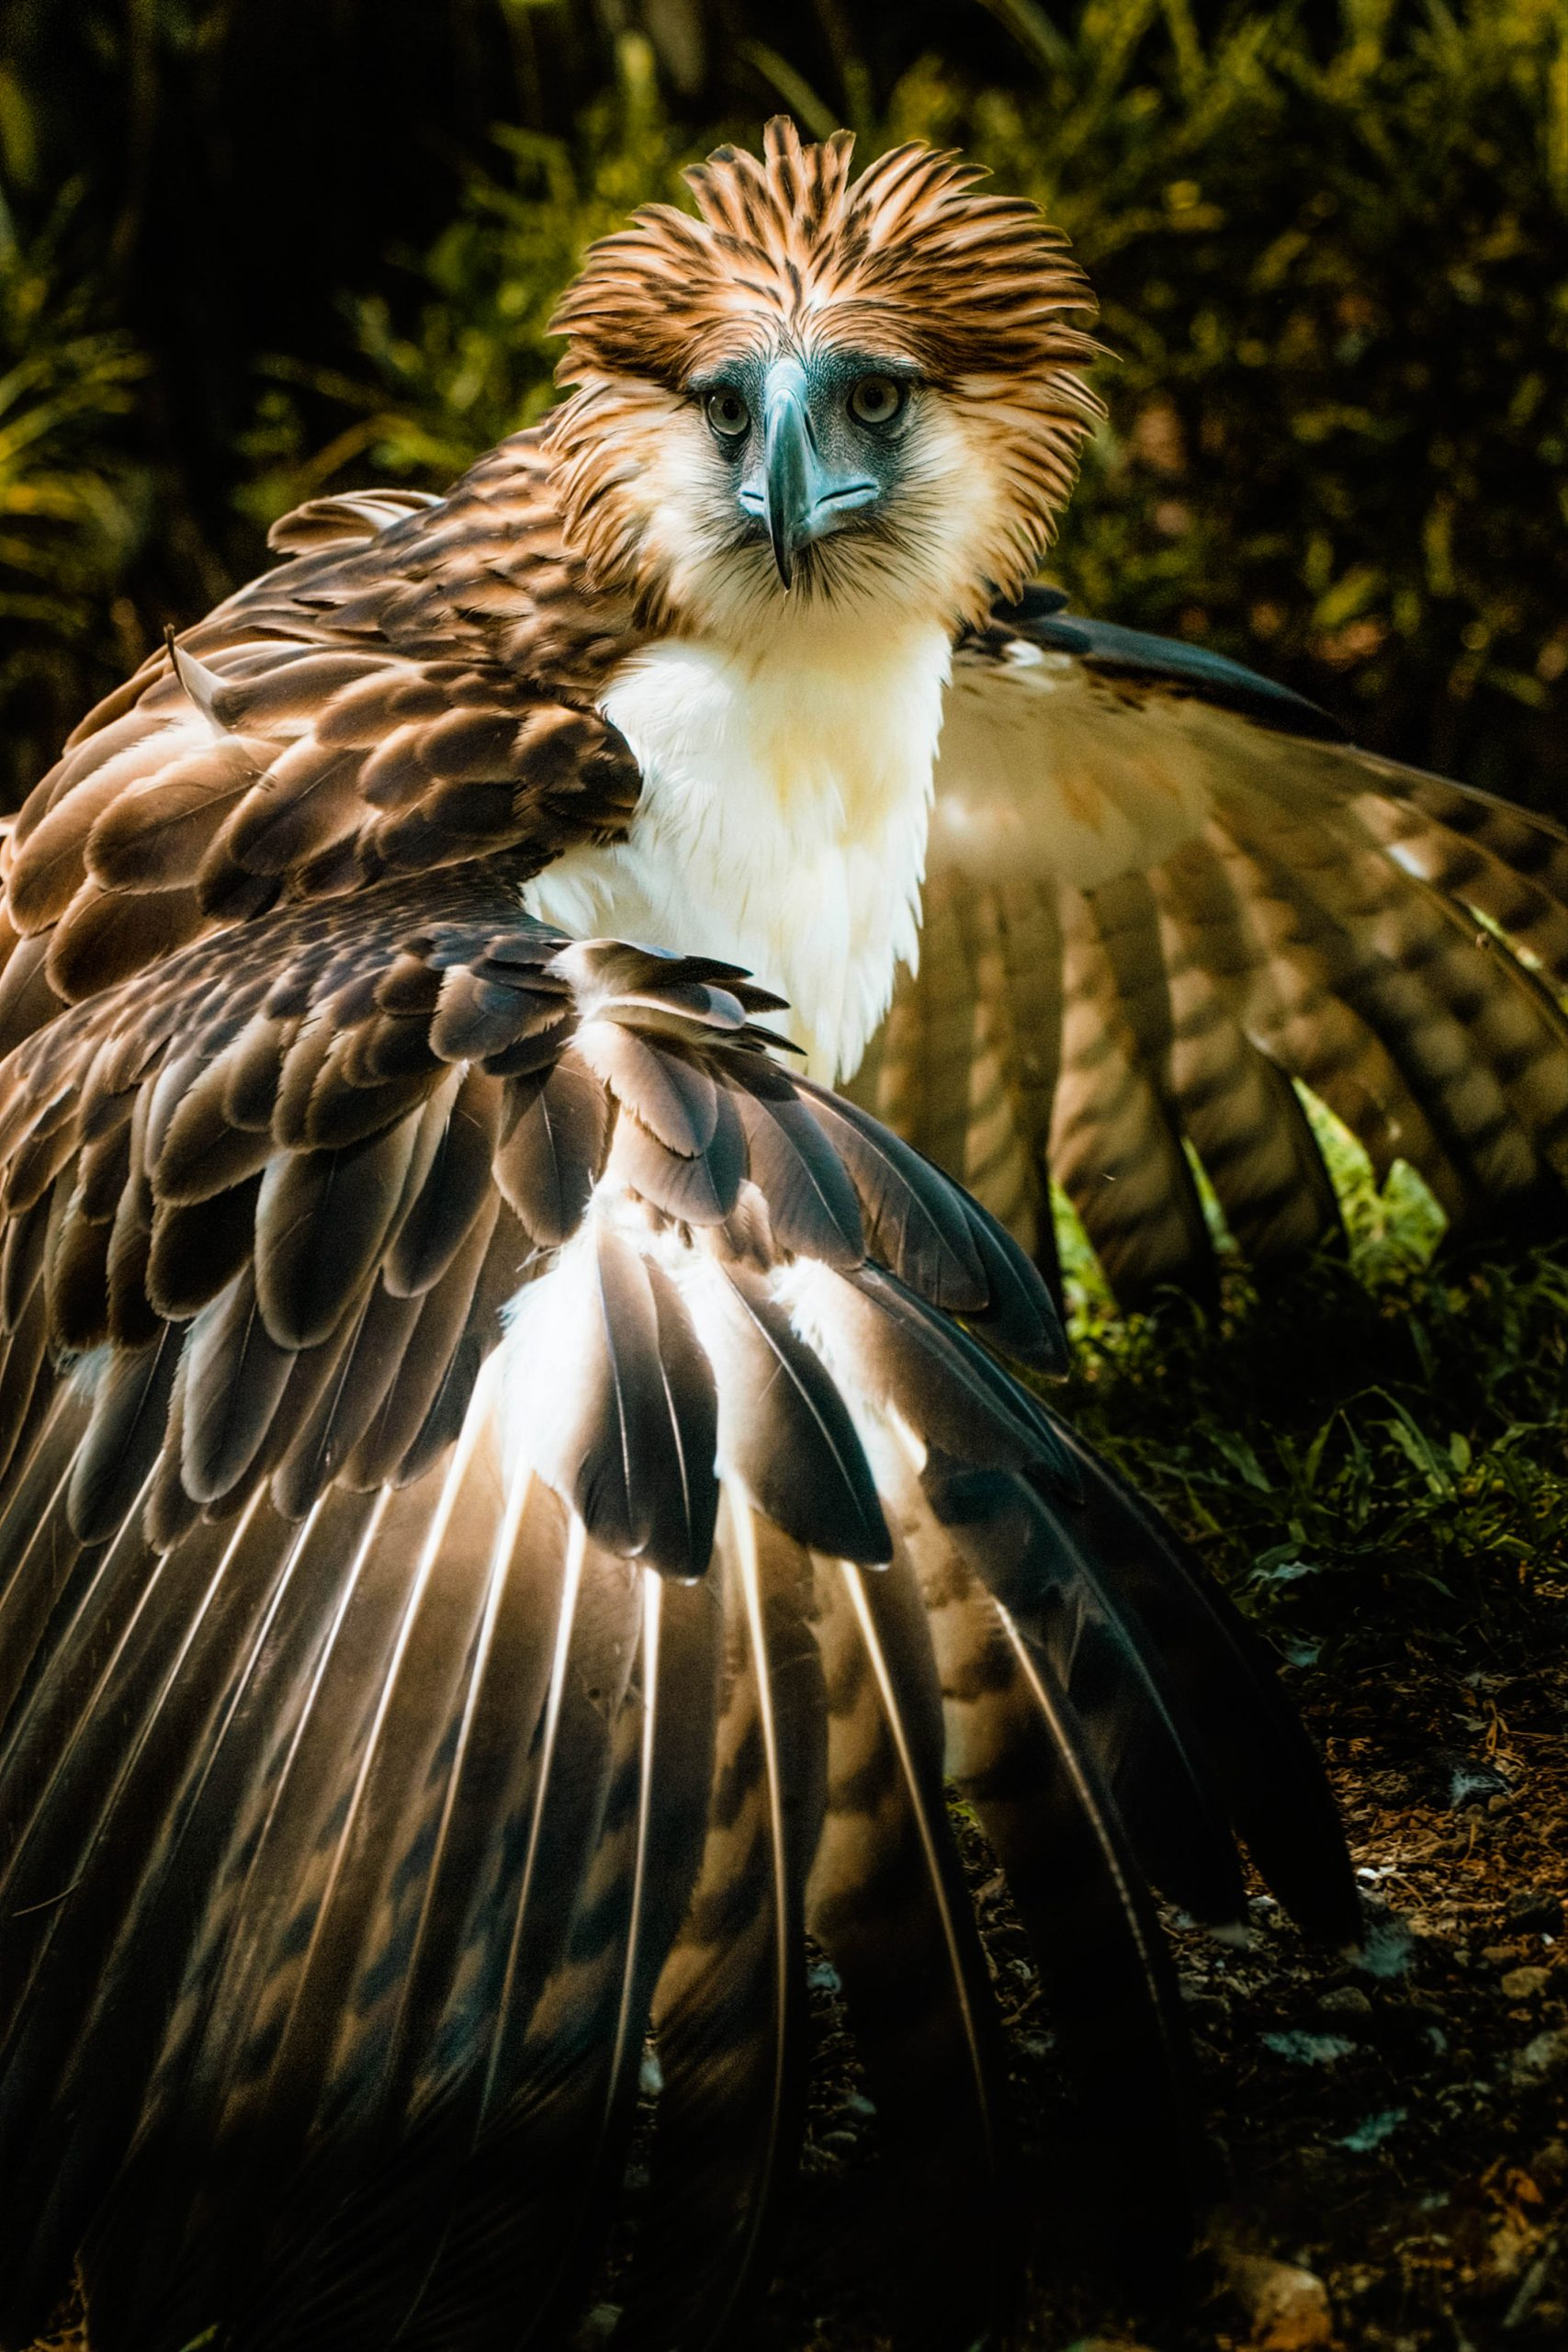 A Philippine eagle, with white, brown, and black feathers, one of the most remarkable fauna of Mount Apo, the highest mountain in the Philippines